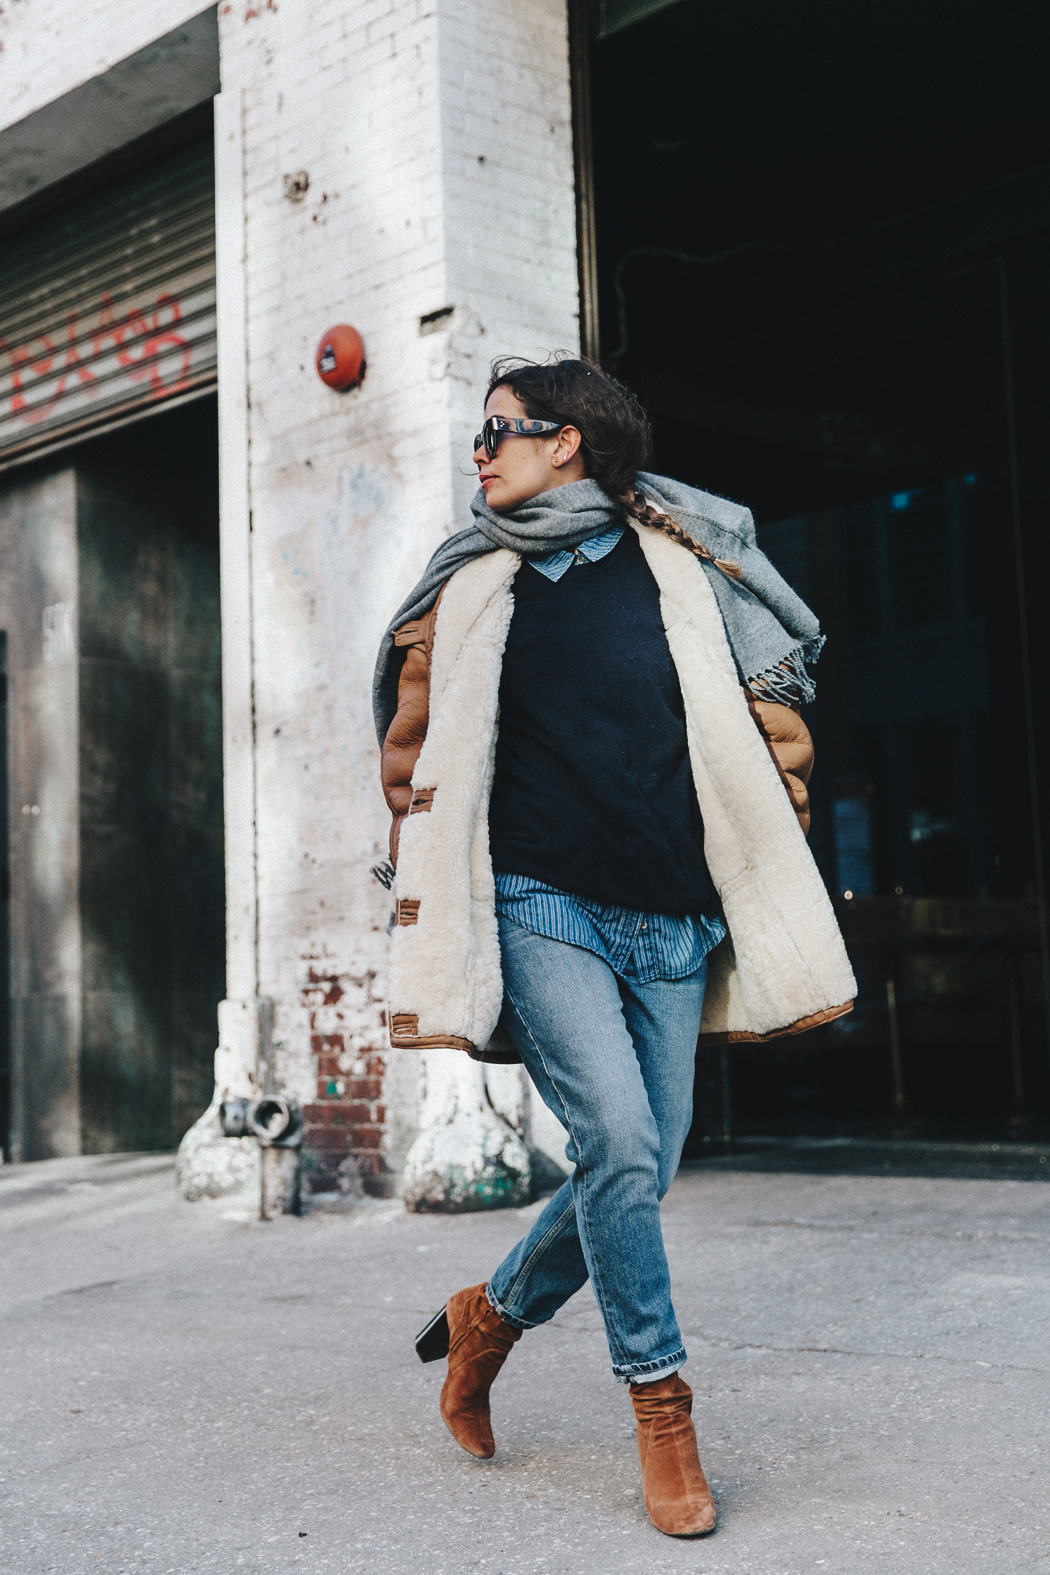 Denim_Lover-Topshop_Jeans-Vintage_Coat-Grey_Scarf-Brown_Booties-Navy_Sweayer-Denim_Shirt-Braids-NYFW-New_York_Fashion_Week-Street_style-Celine_Bag-Vestiaire_Collective-44